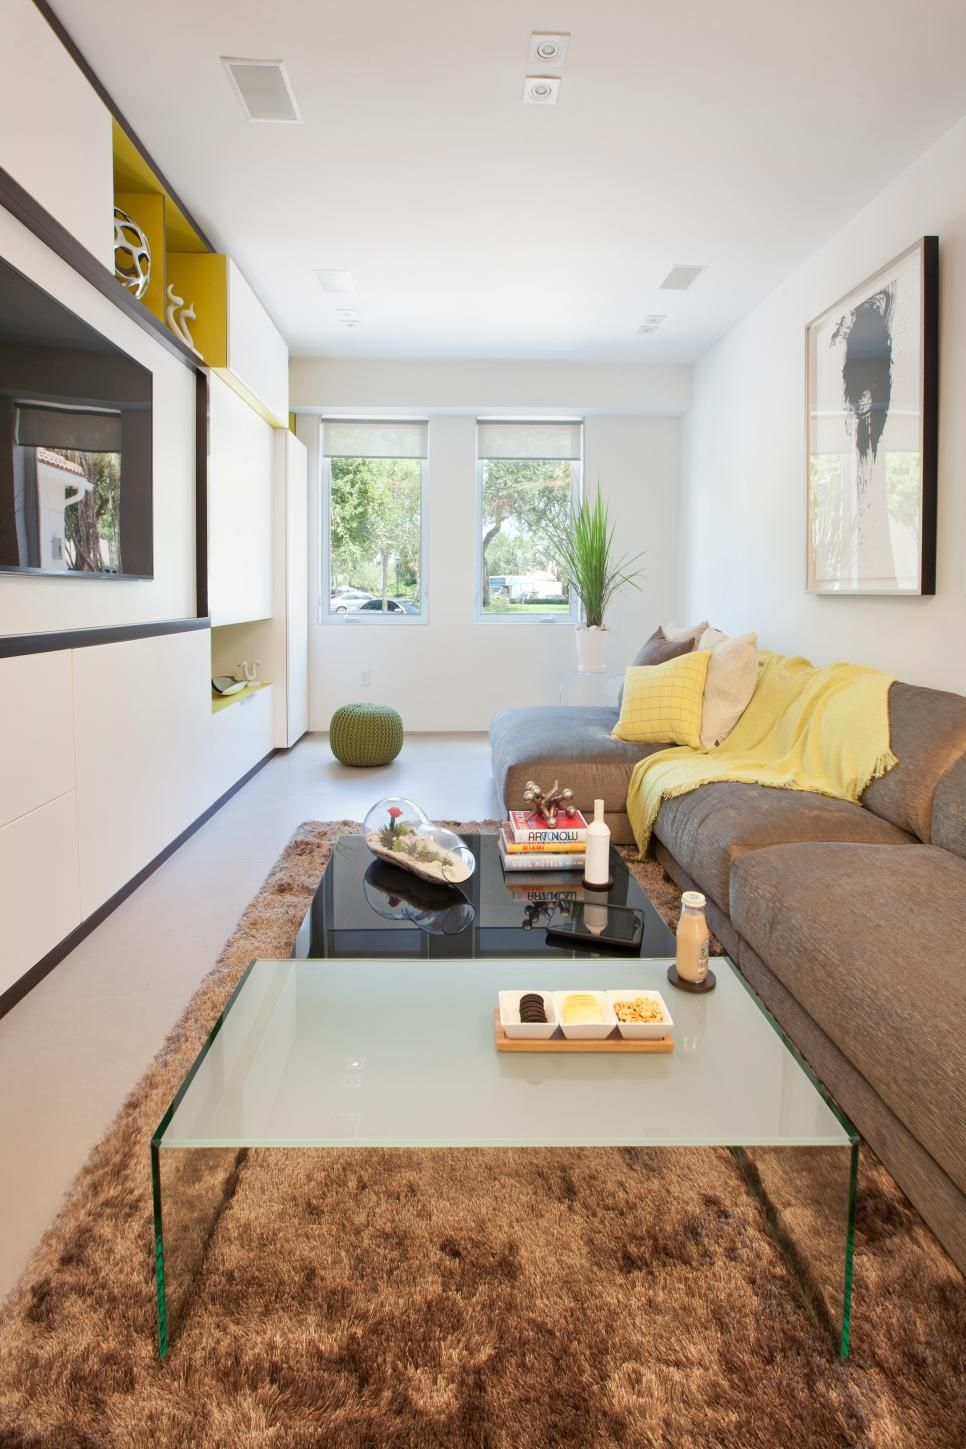 An Overstuffed Sofa And Casual Accessories Give This Narrow Living Room An  Inviting Charm While Streamlined